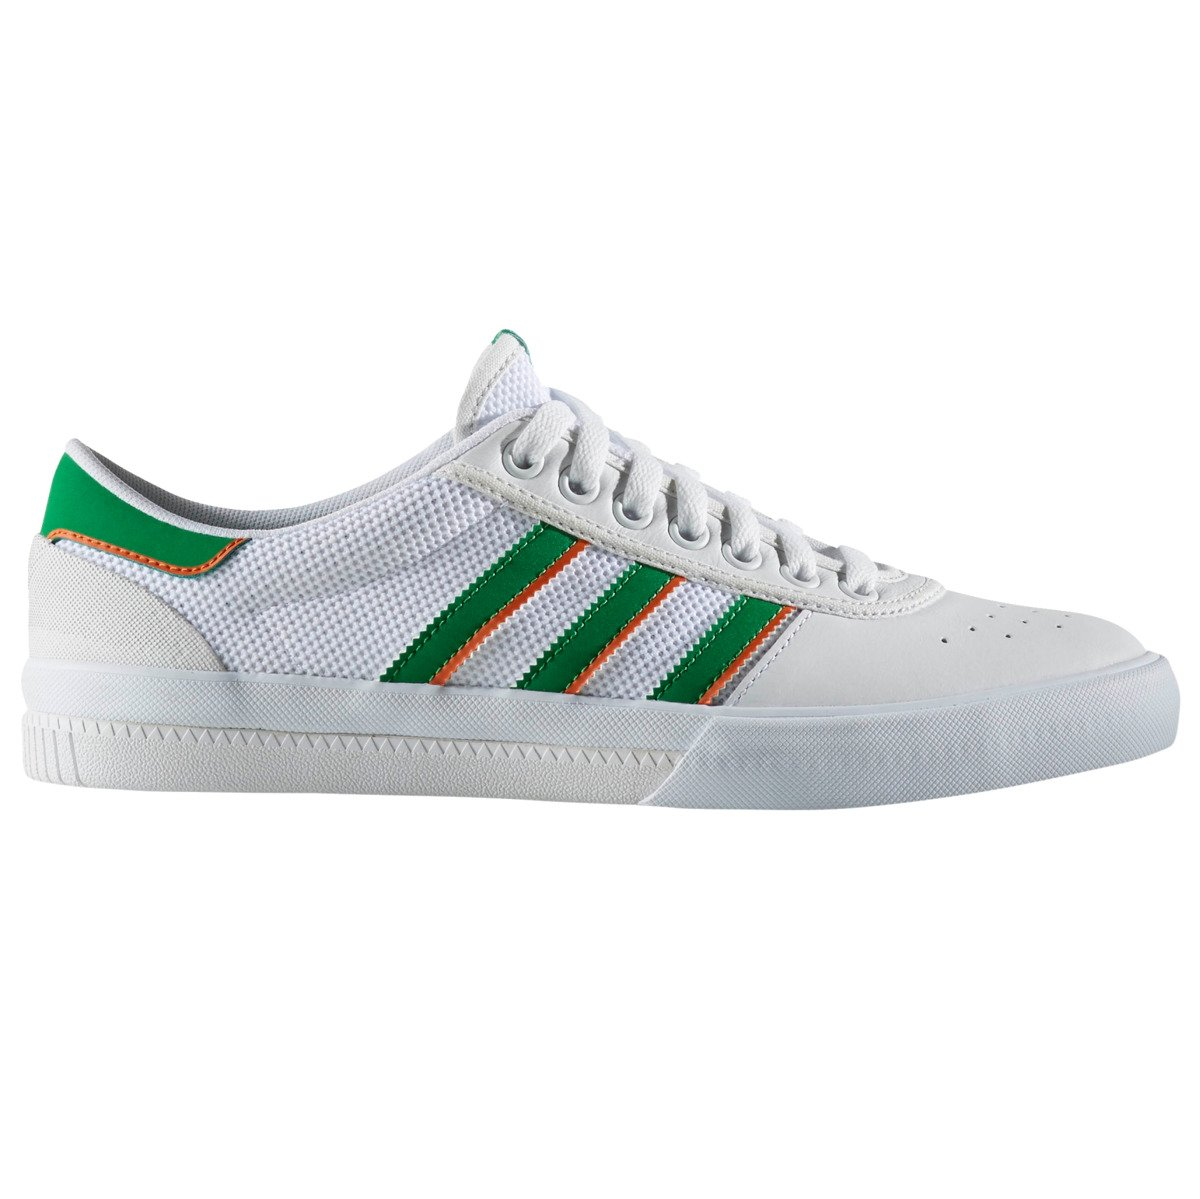 43e87345669b5 shoes adidas skateboarding lucas premiere white | Shoes \ Adidas  Skateboarding SALE \ Sale 50% -70% \ Shoes Brands \ Adidas Originals Buty \  Adidas ...